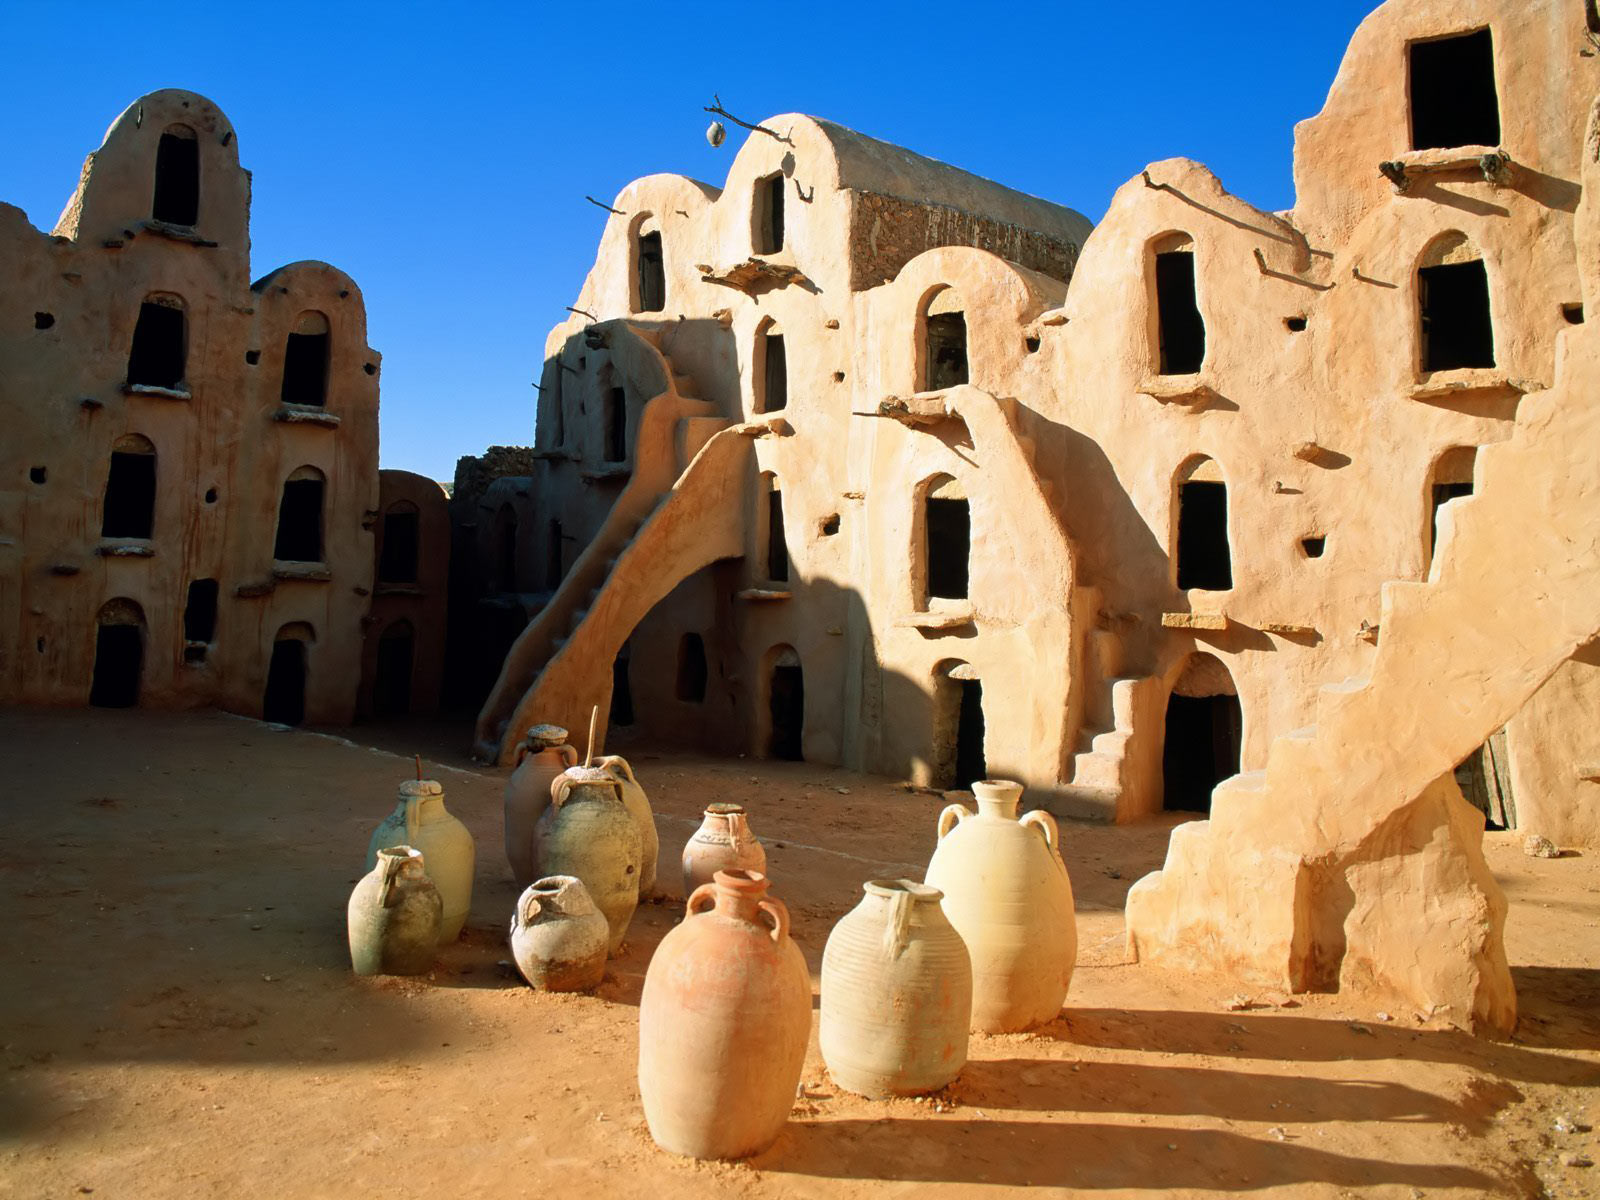 Ksar Ouled_Soultane_Tataouine_Tunisia_wallpaper